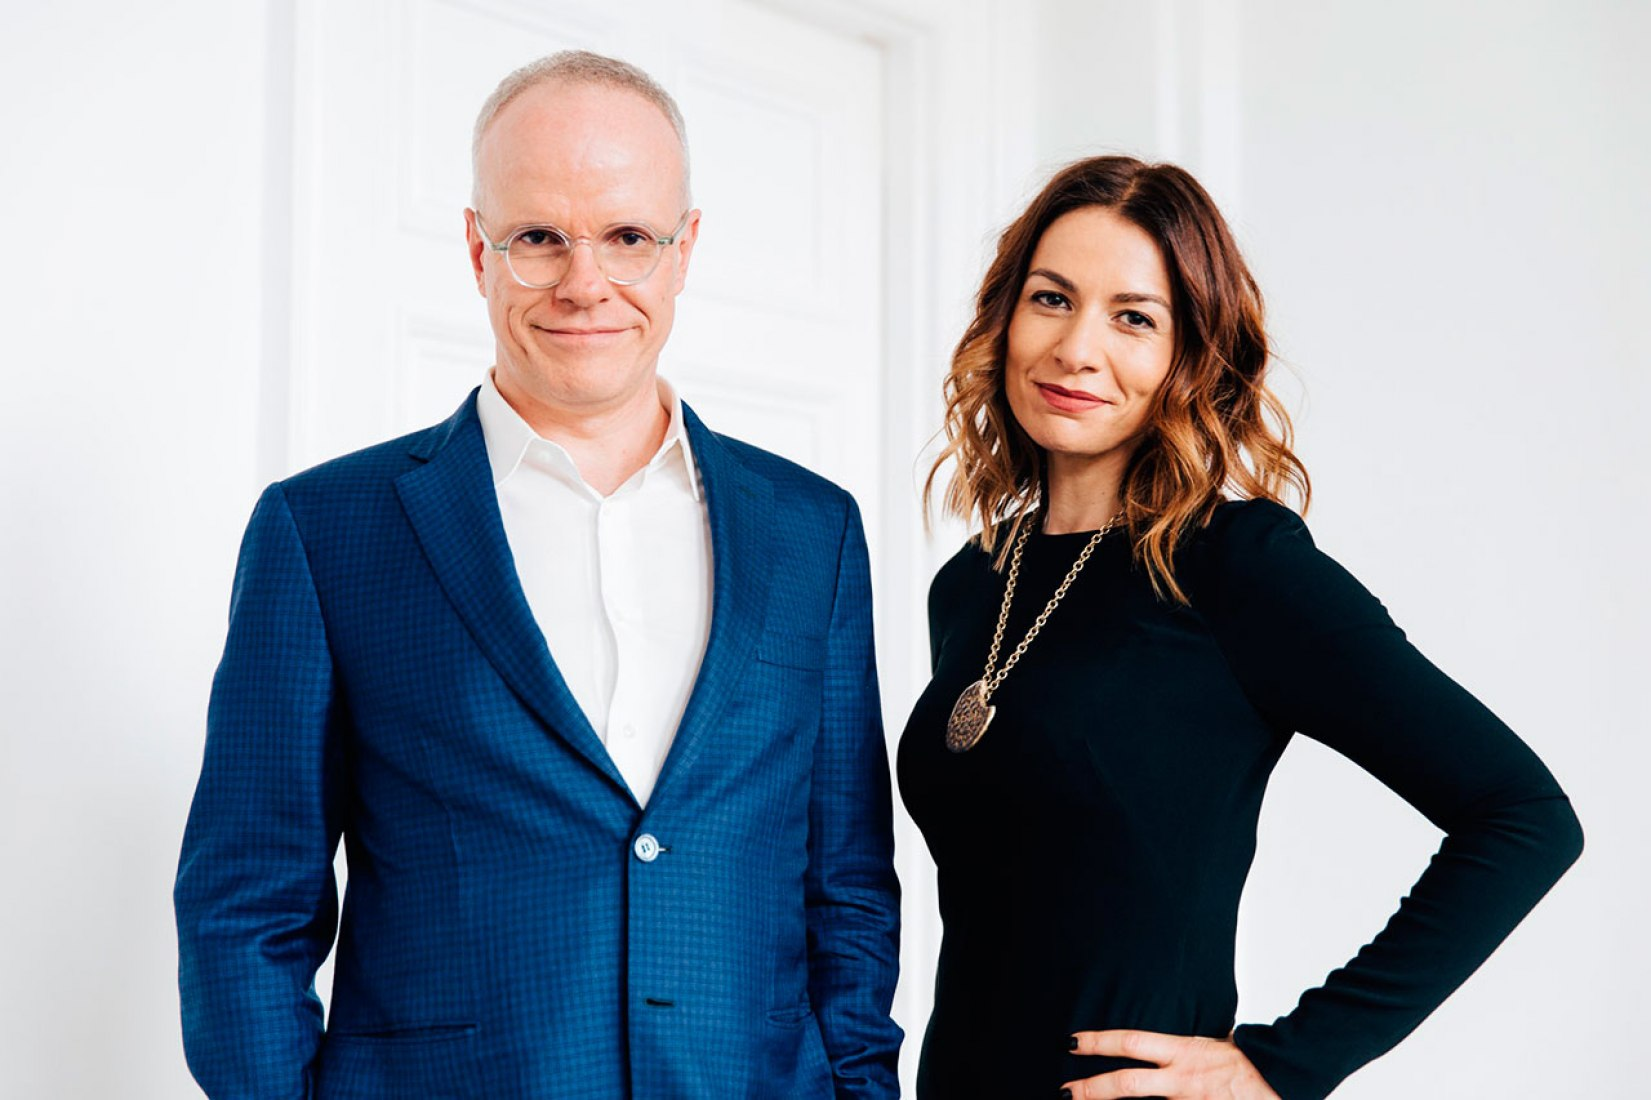 Hans Ulrich Obrist and Yana Peel will work in partnership after co-director Julia Peyton-Jones steps down from her post. Photograph © Kate Berry.